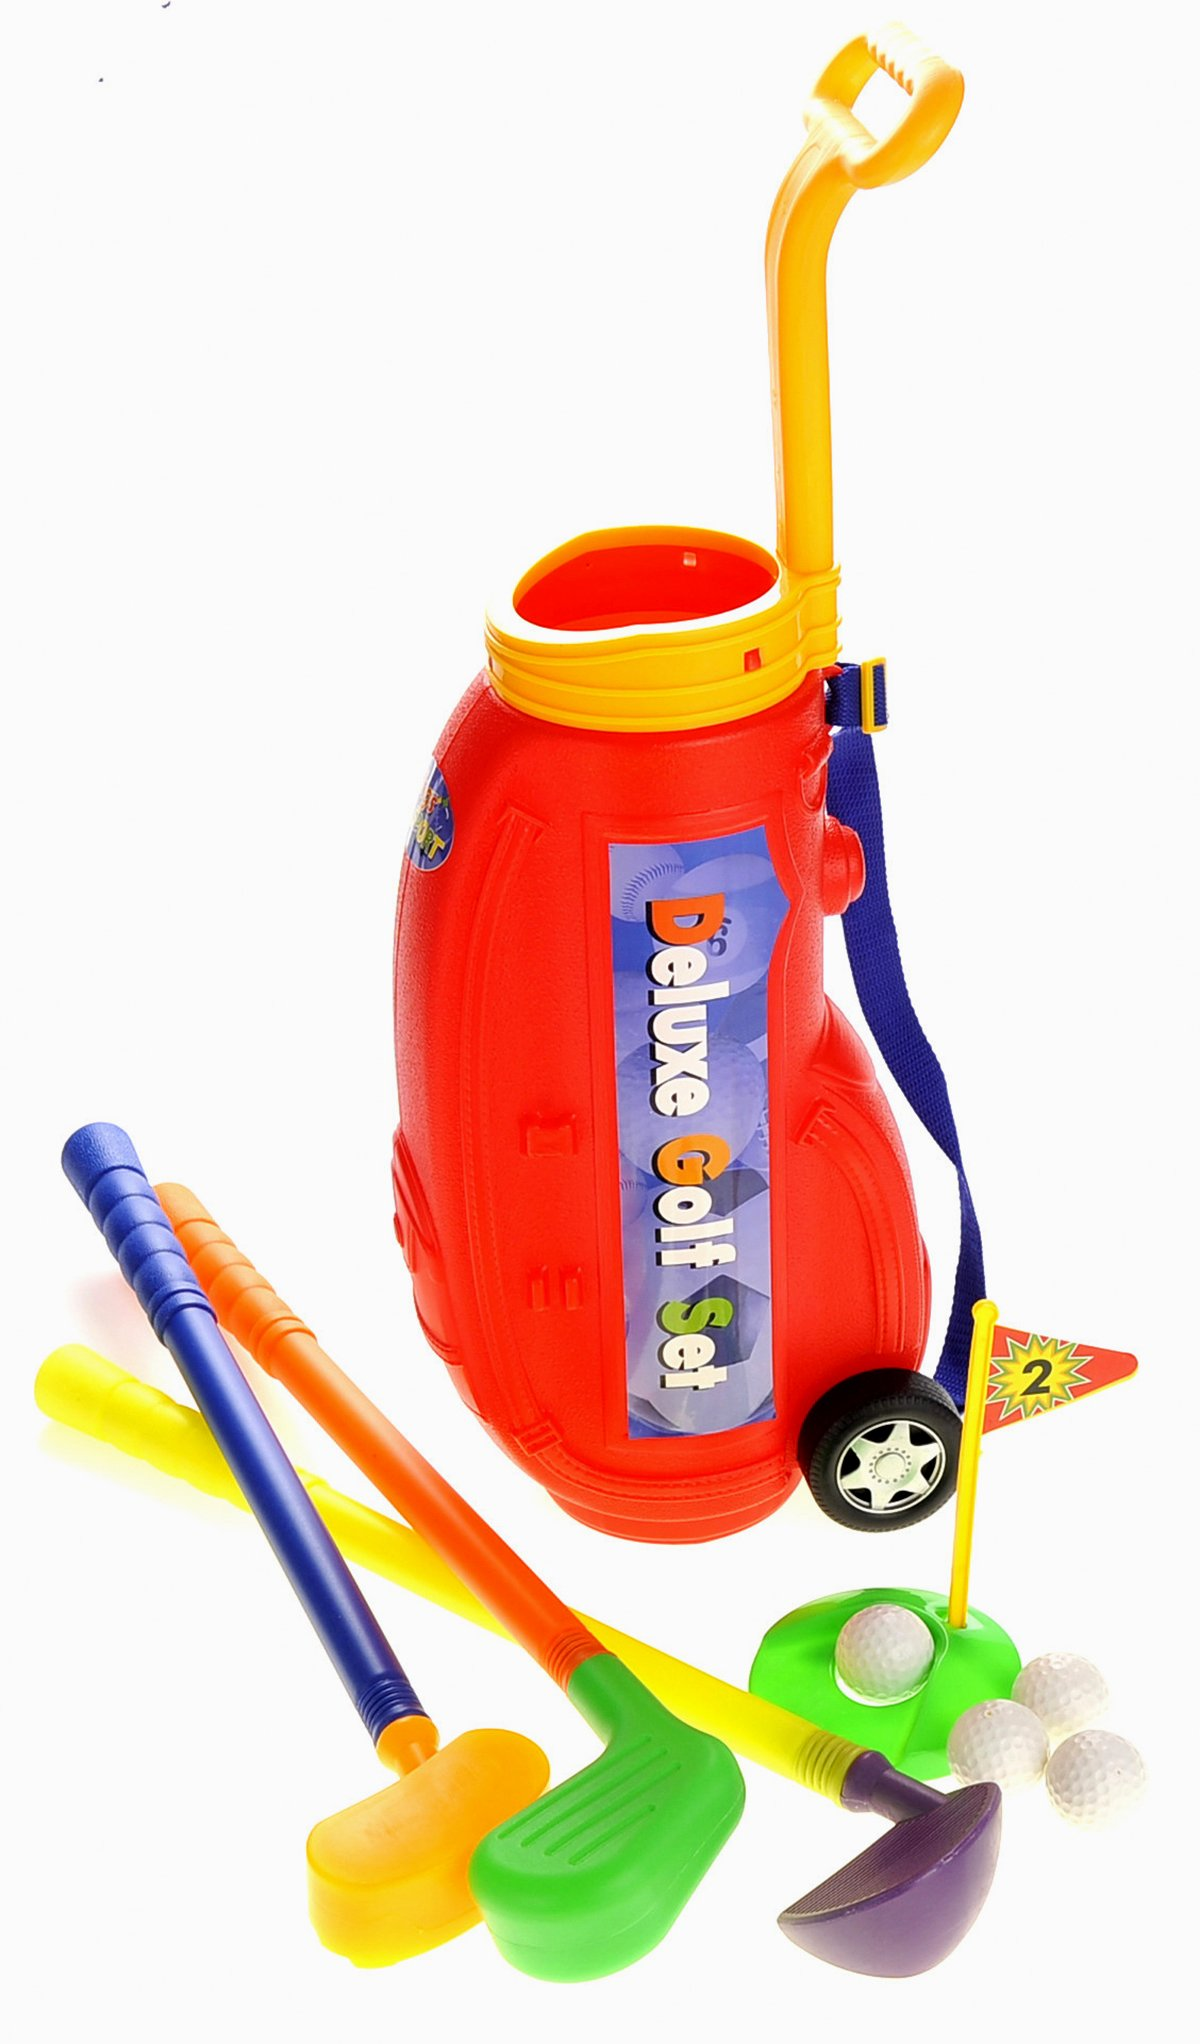 PowerTRC Deluxe Golf Play-Set for Kids w/ Easy Storage by PowerTRC (Image #1)